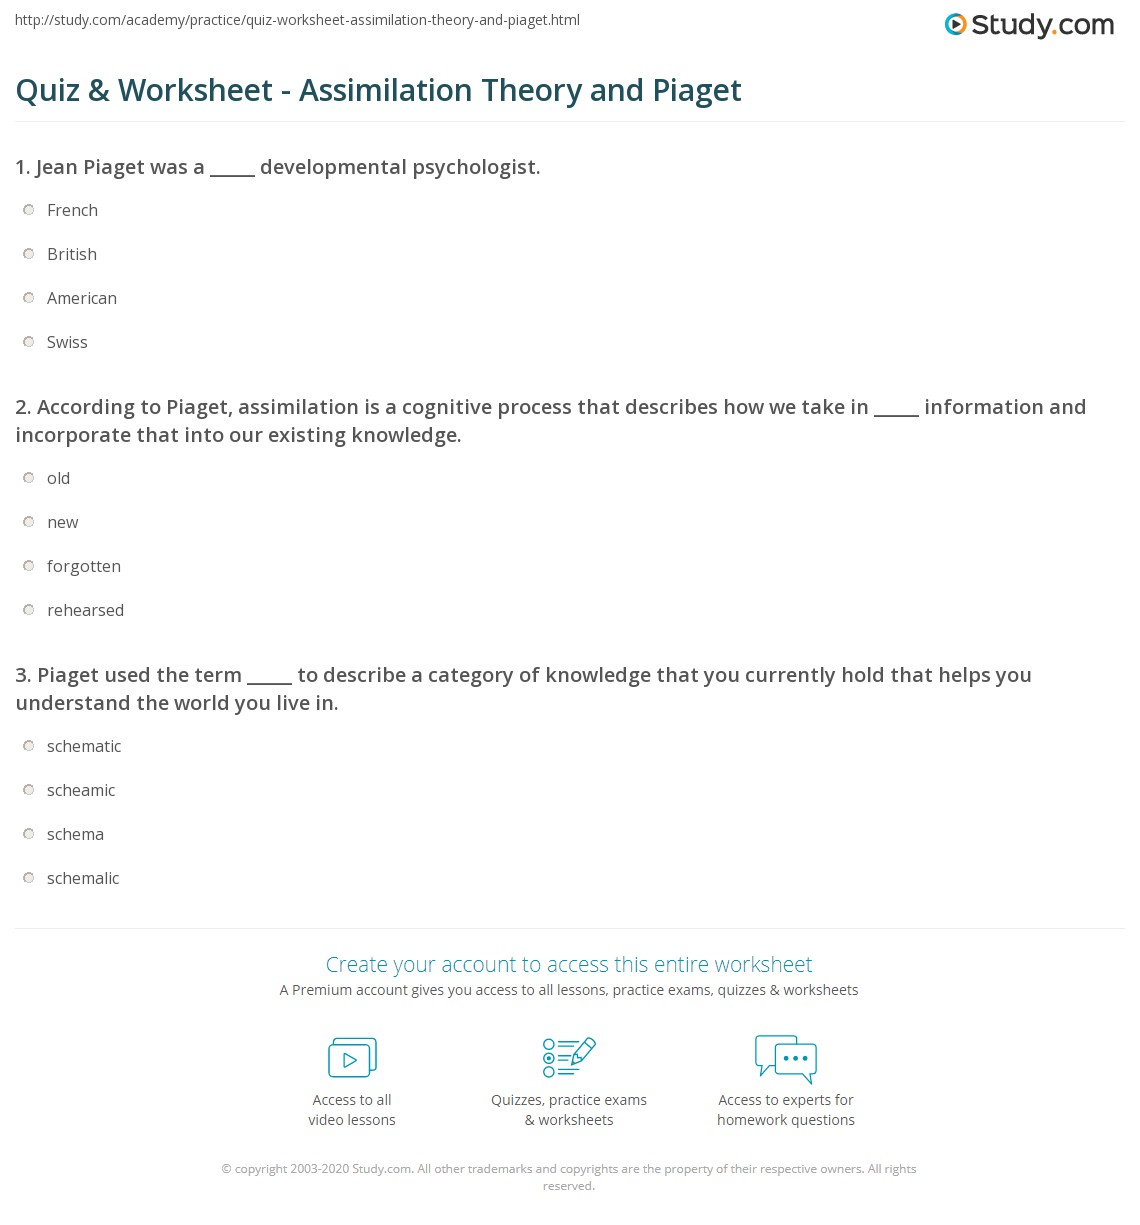 Quiz & Worksheet - Assimilation Theory and Piaget | Study.com